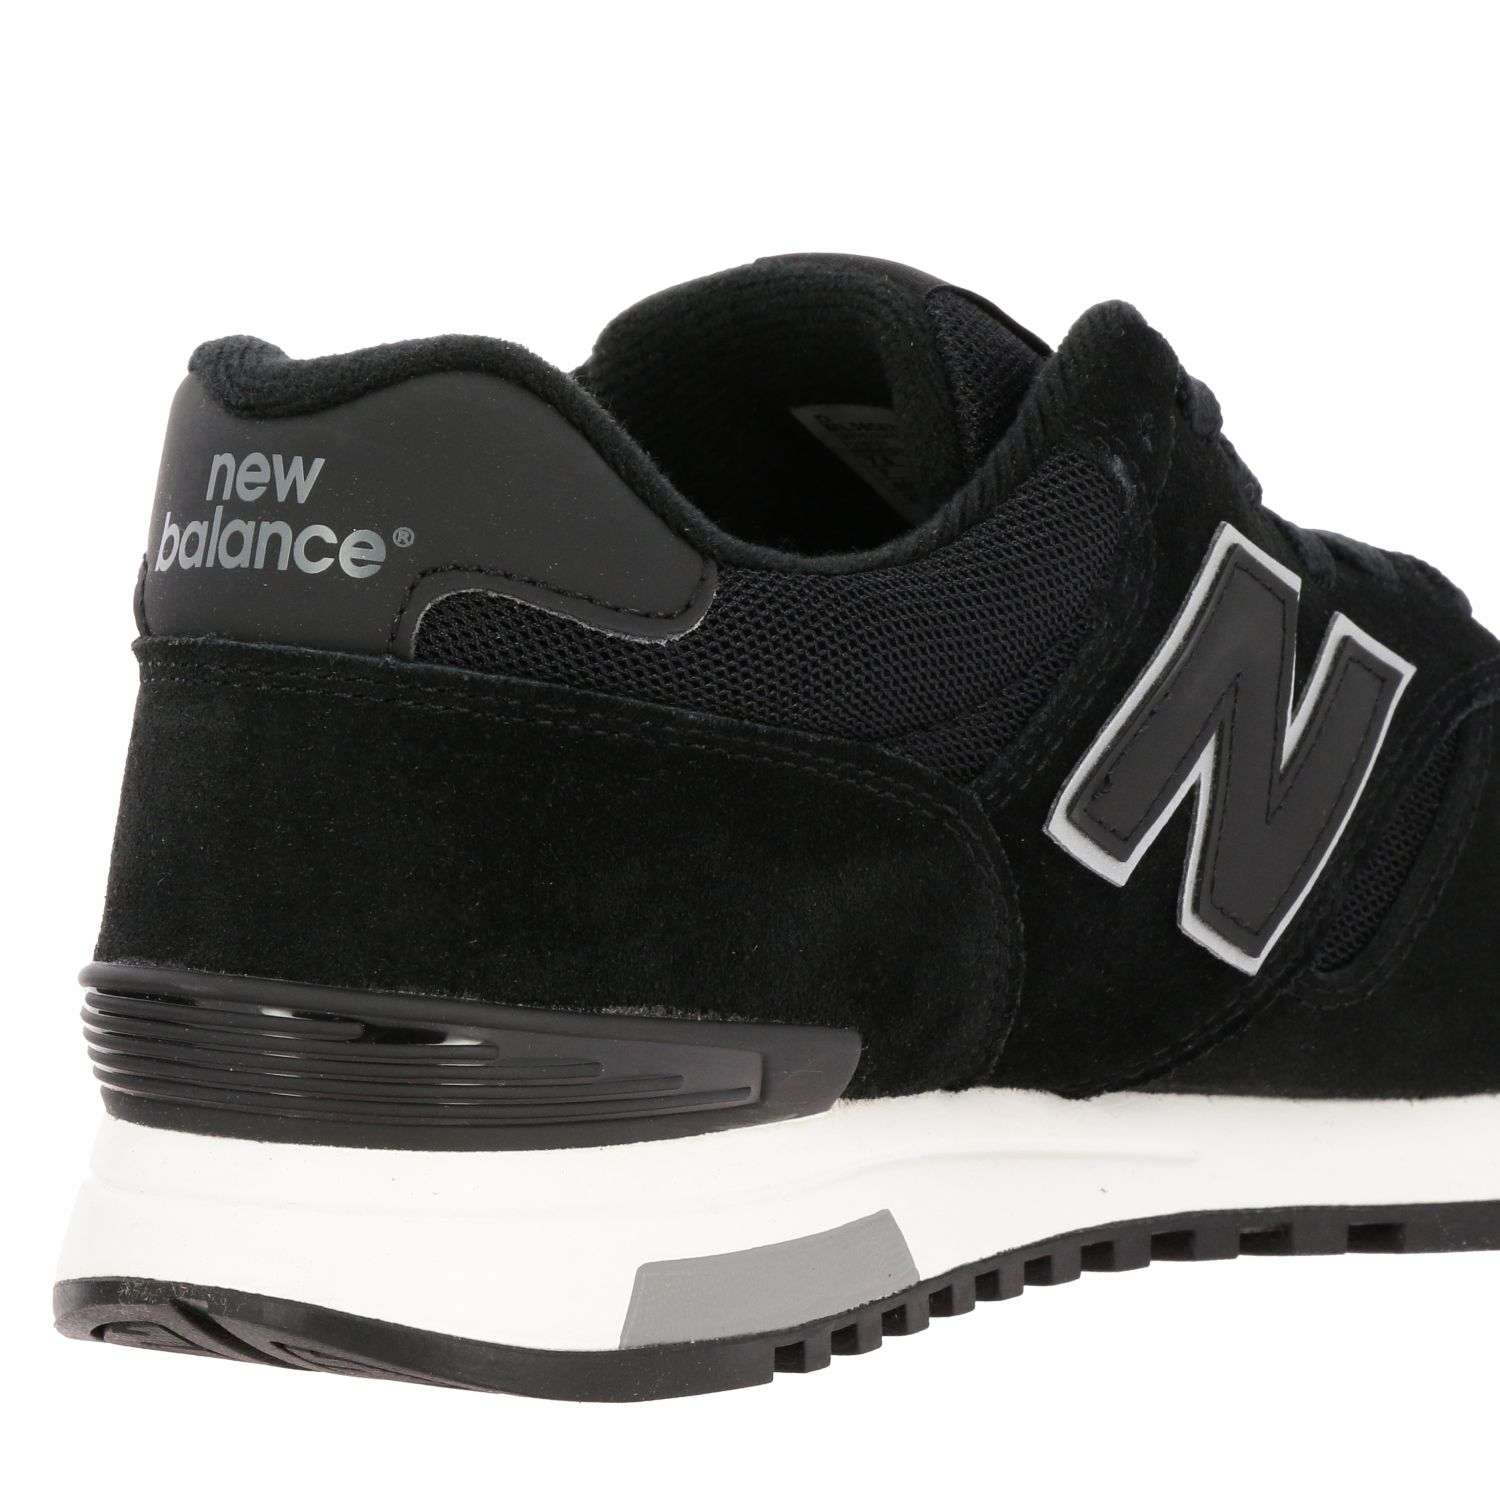 Trainers New Balance: Shoes men New Balance black 5